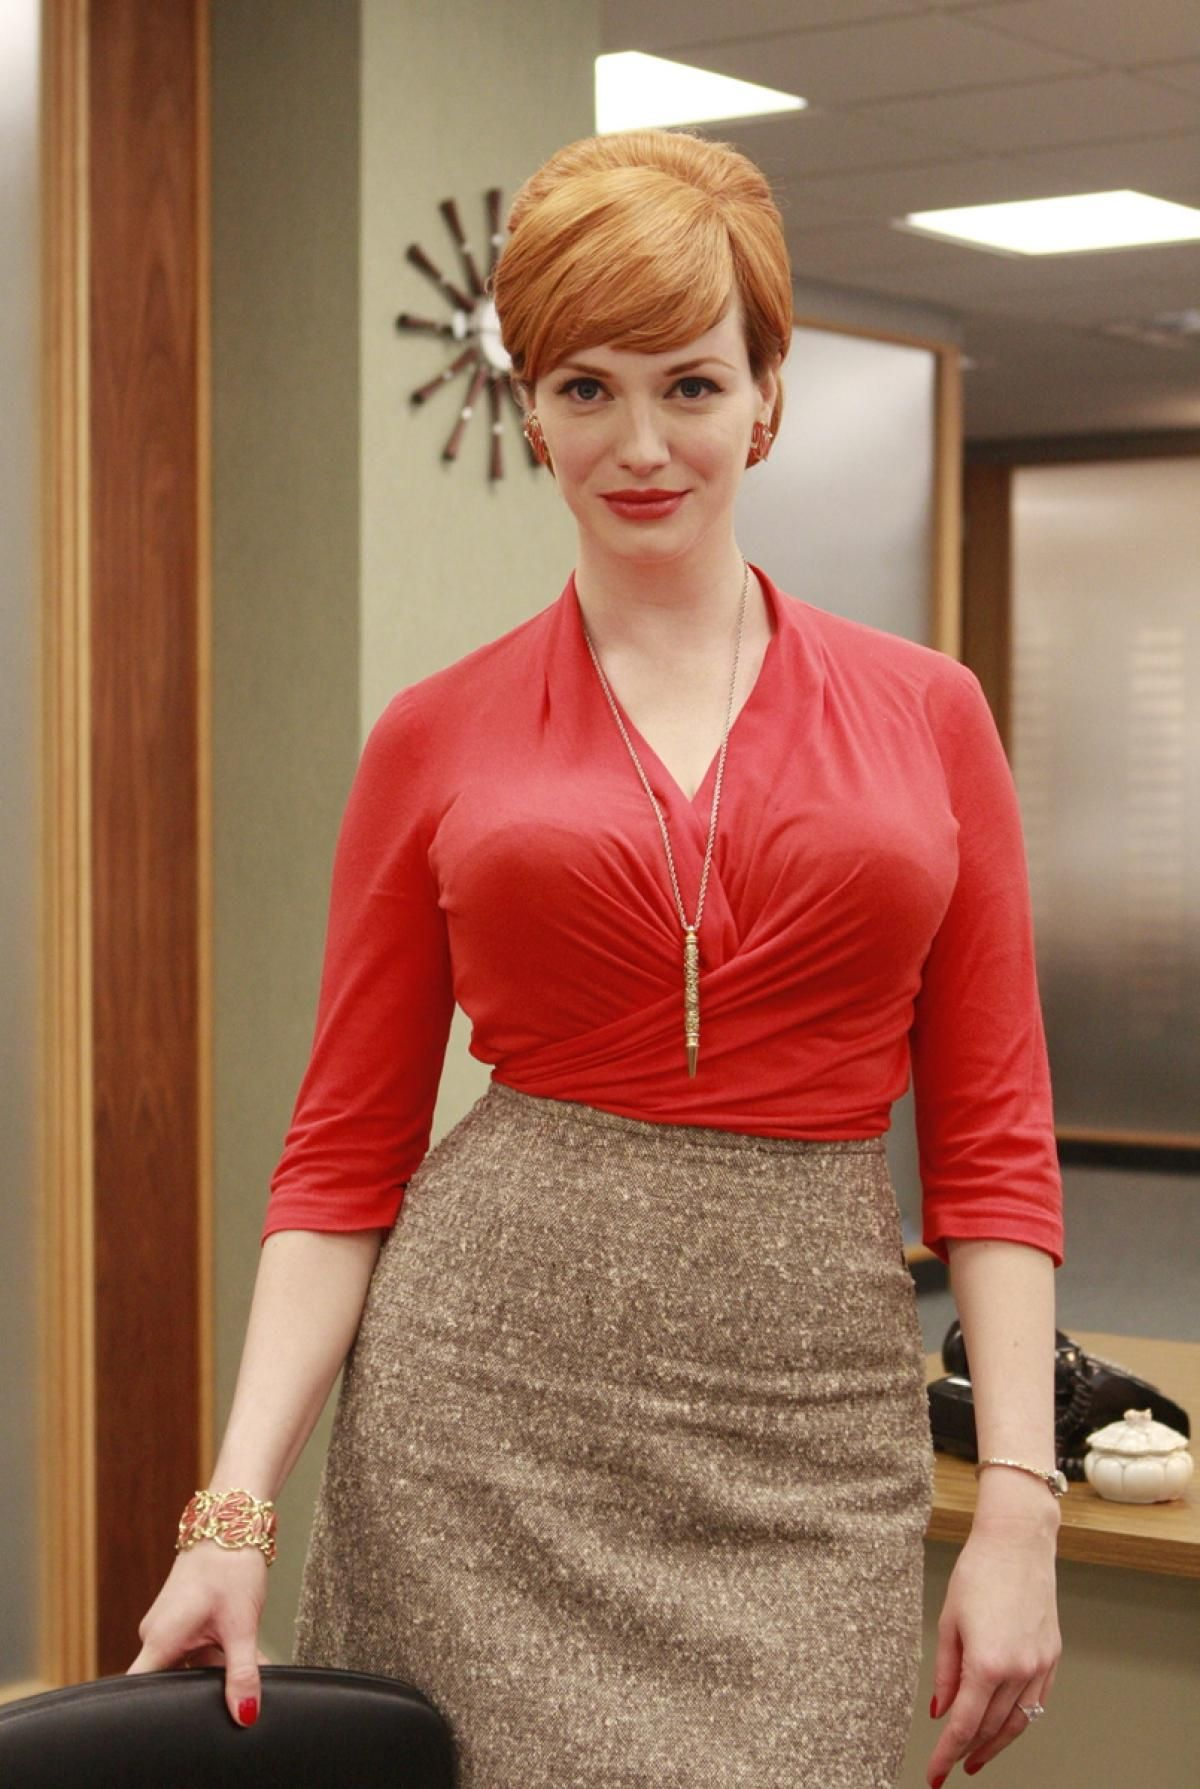 Mad Men,\' Season 2 - Photos - The evolution of \'Mad Men\' style ...